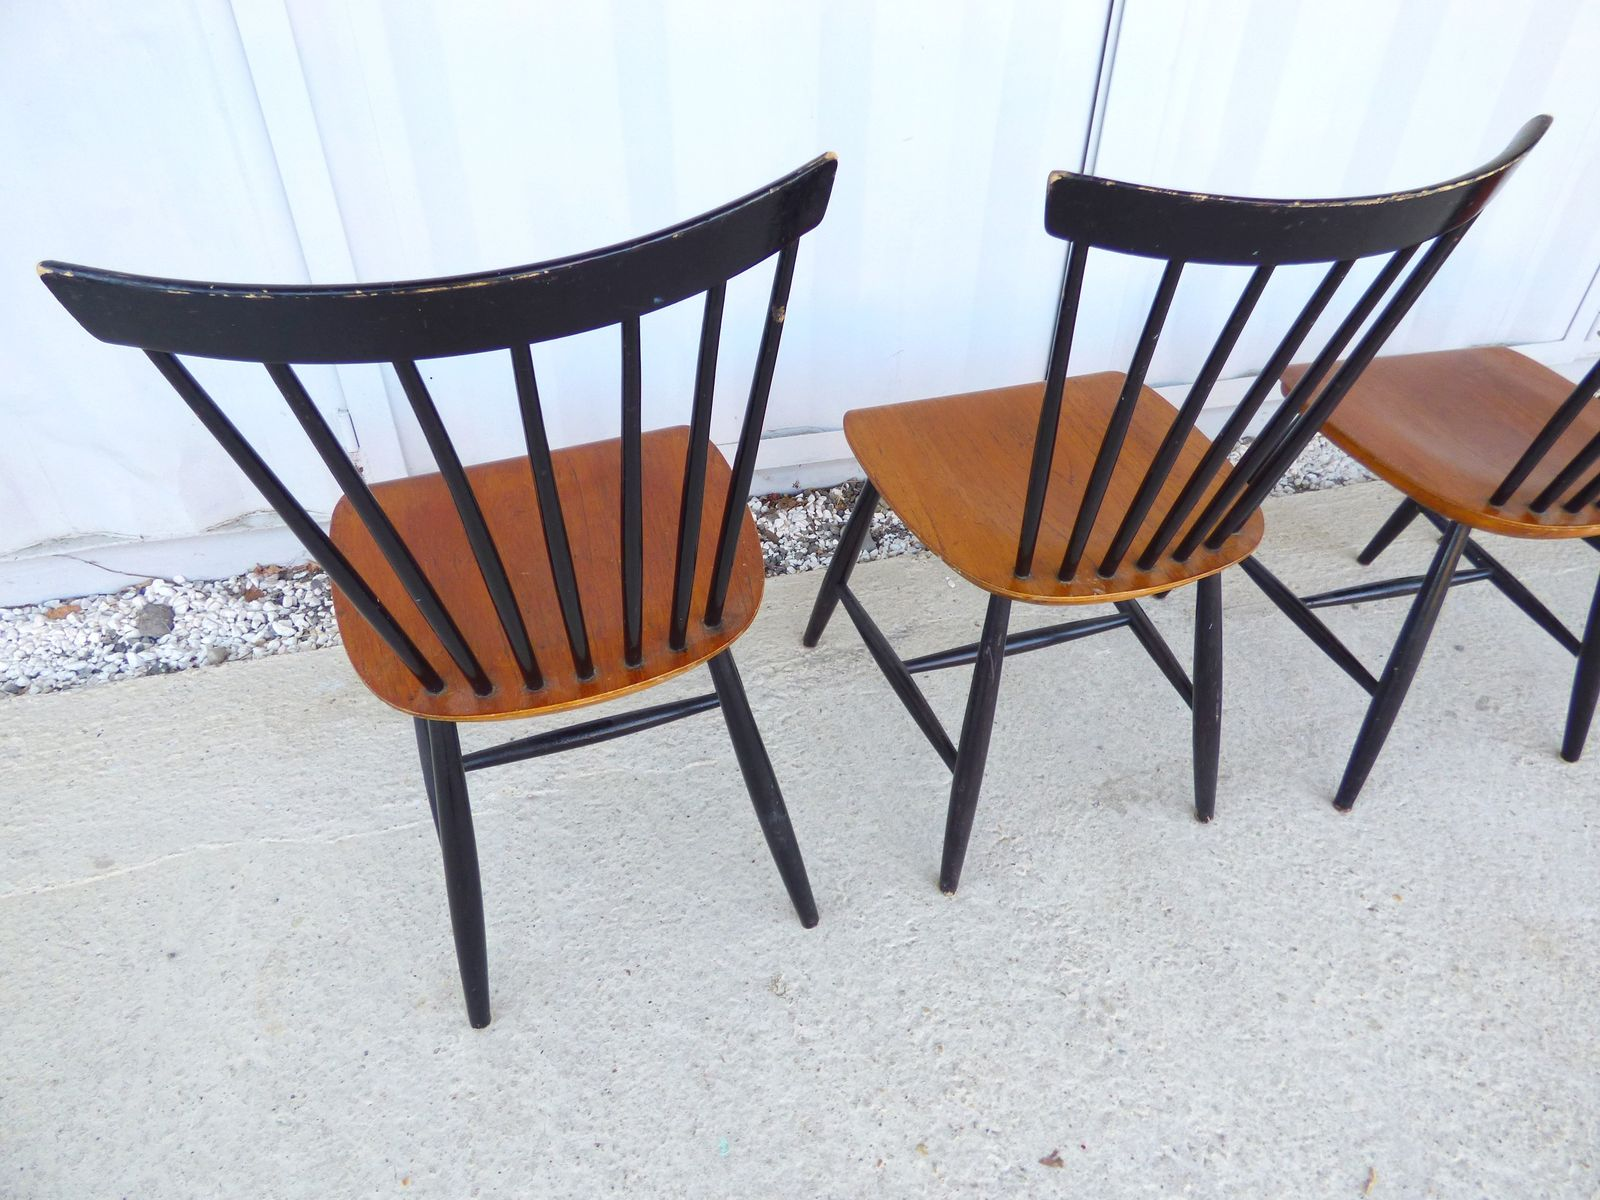 mid century chairs by ilmari tapiovaara set of 4 for sale at pamono. Black Bedroom Furniture Sets. Home Design Ideas